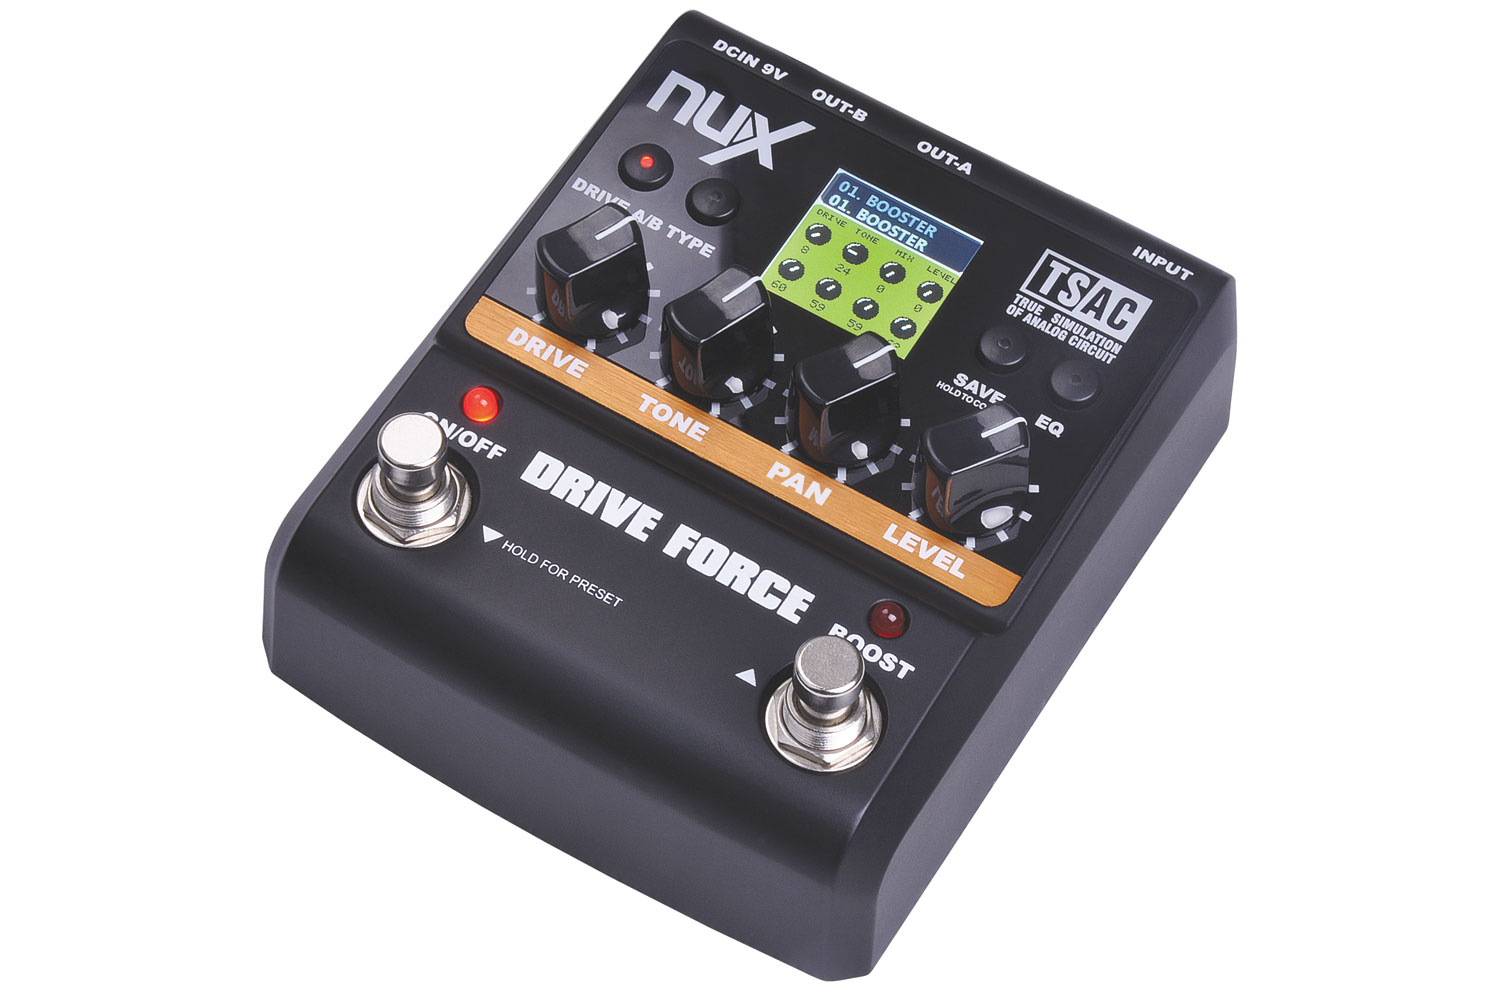 NUX Time Force delay + 40sec. looper pedal